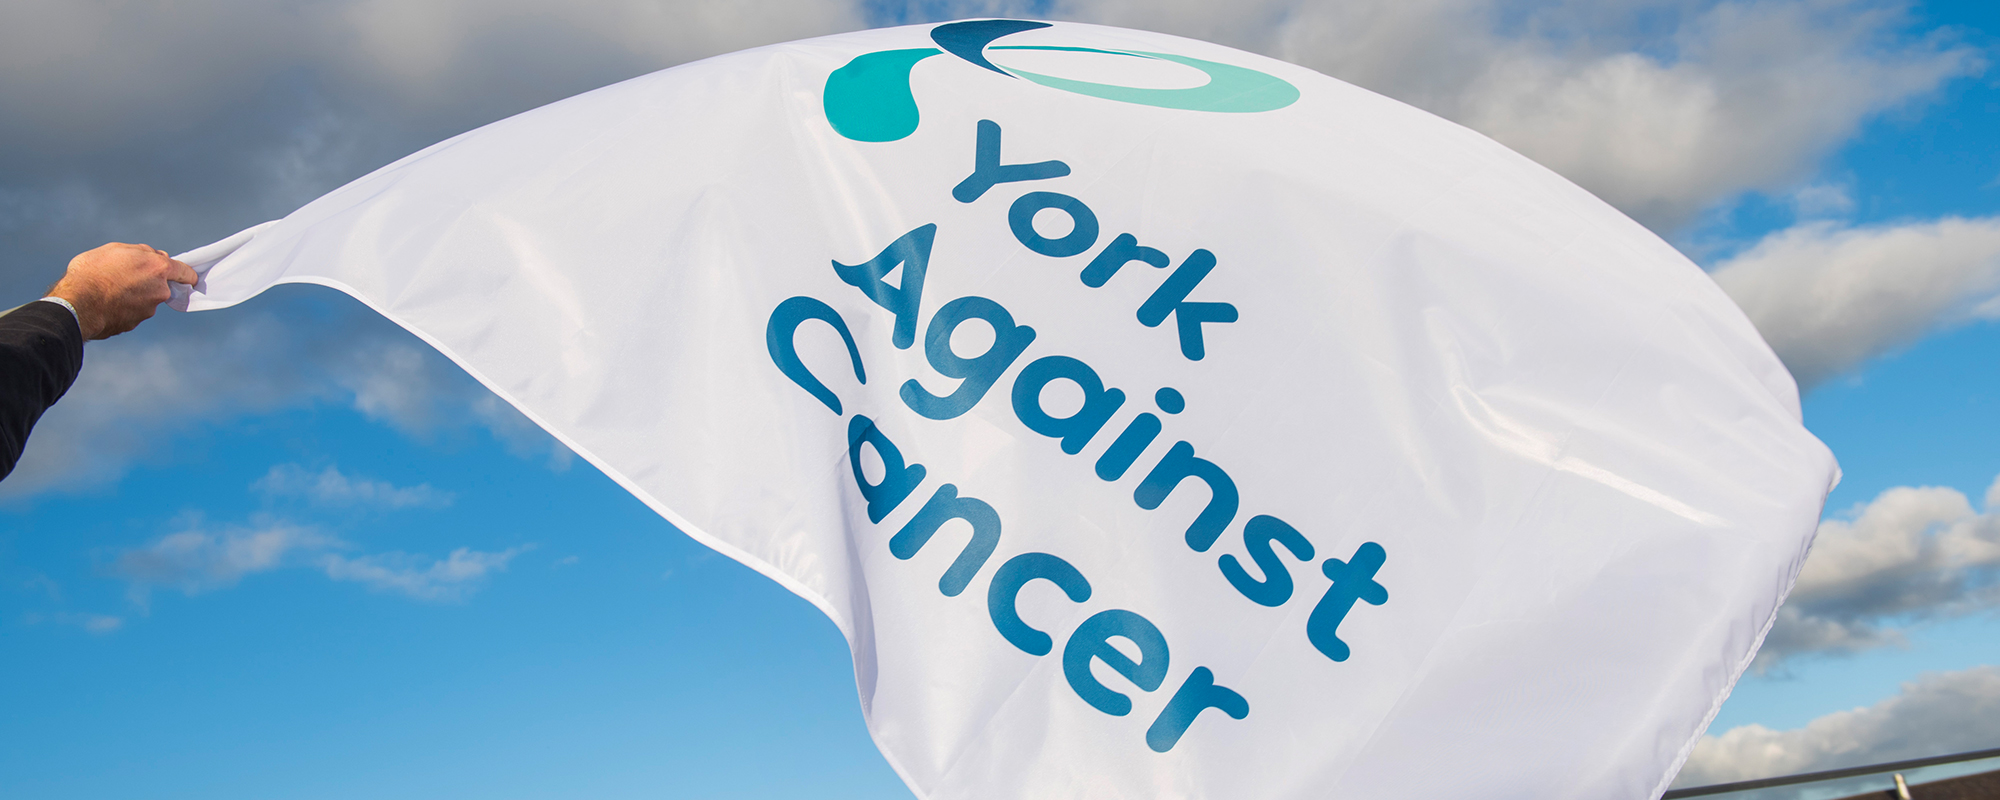 York Against Cancer flag waving in the air